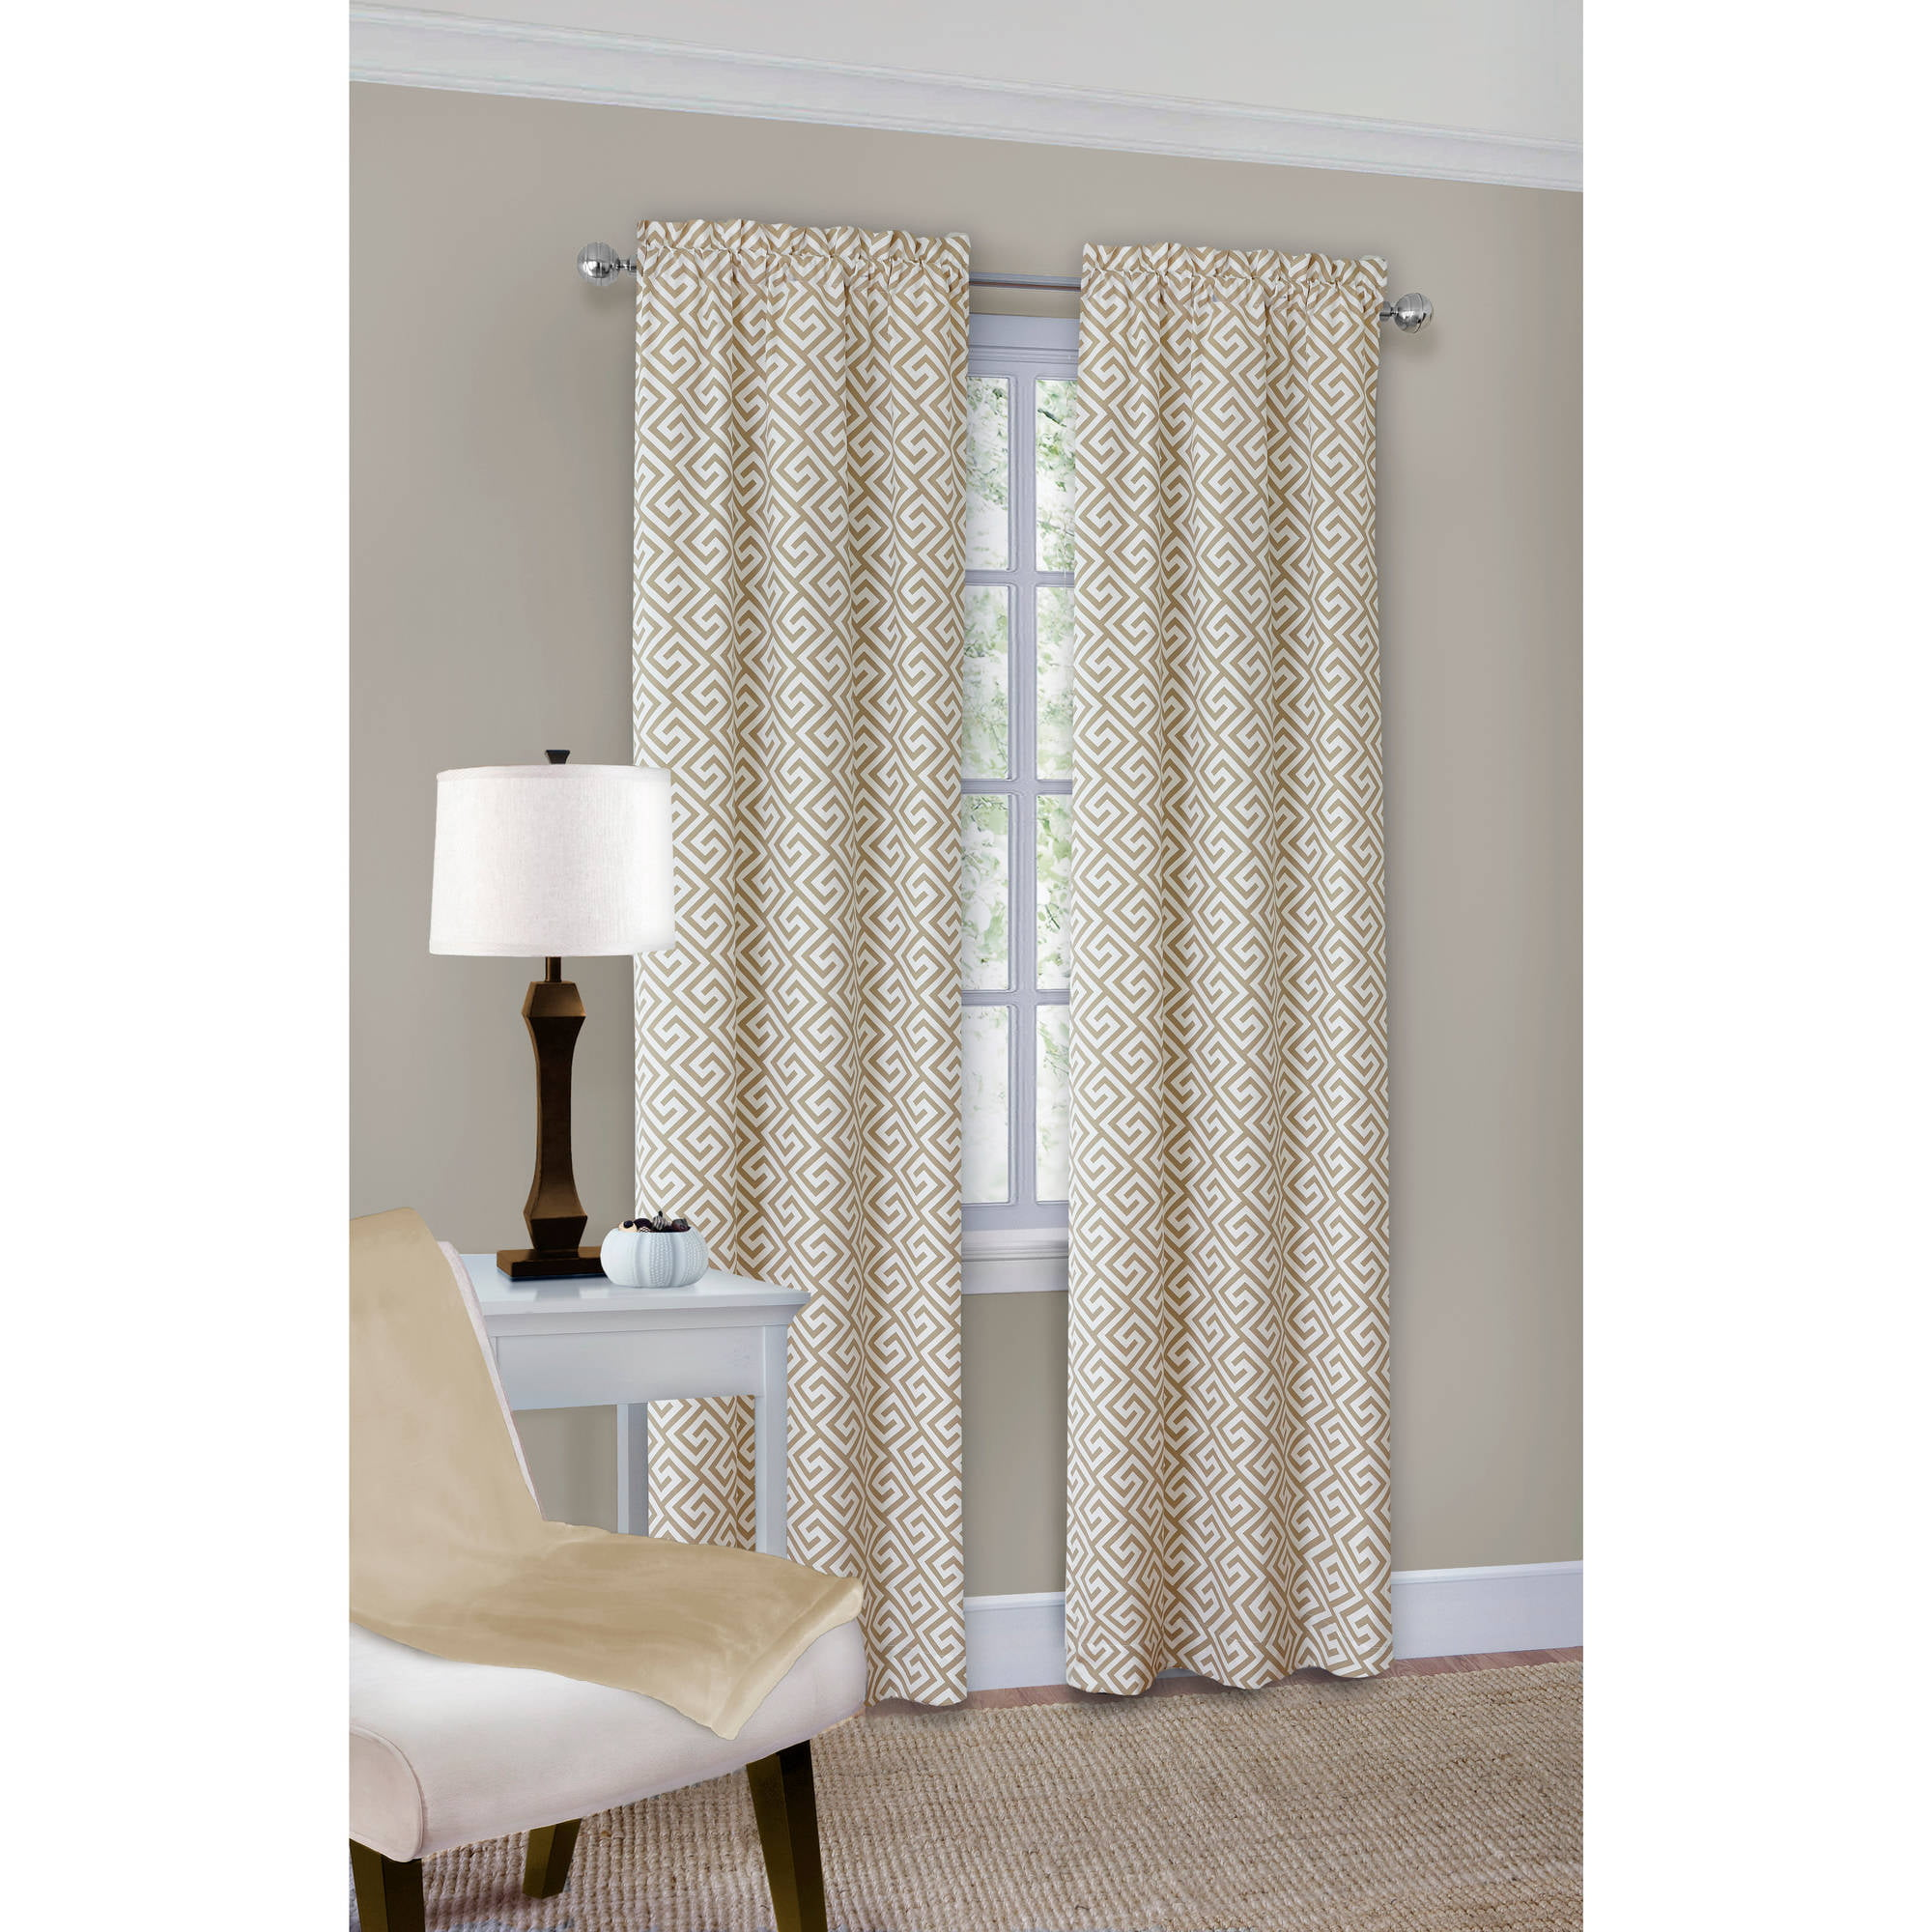 5 Panel Window : Curtain panels at home territory